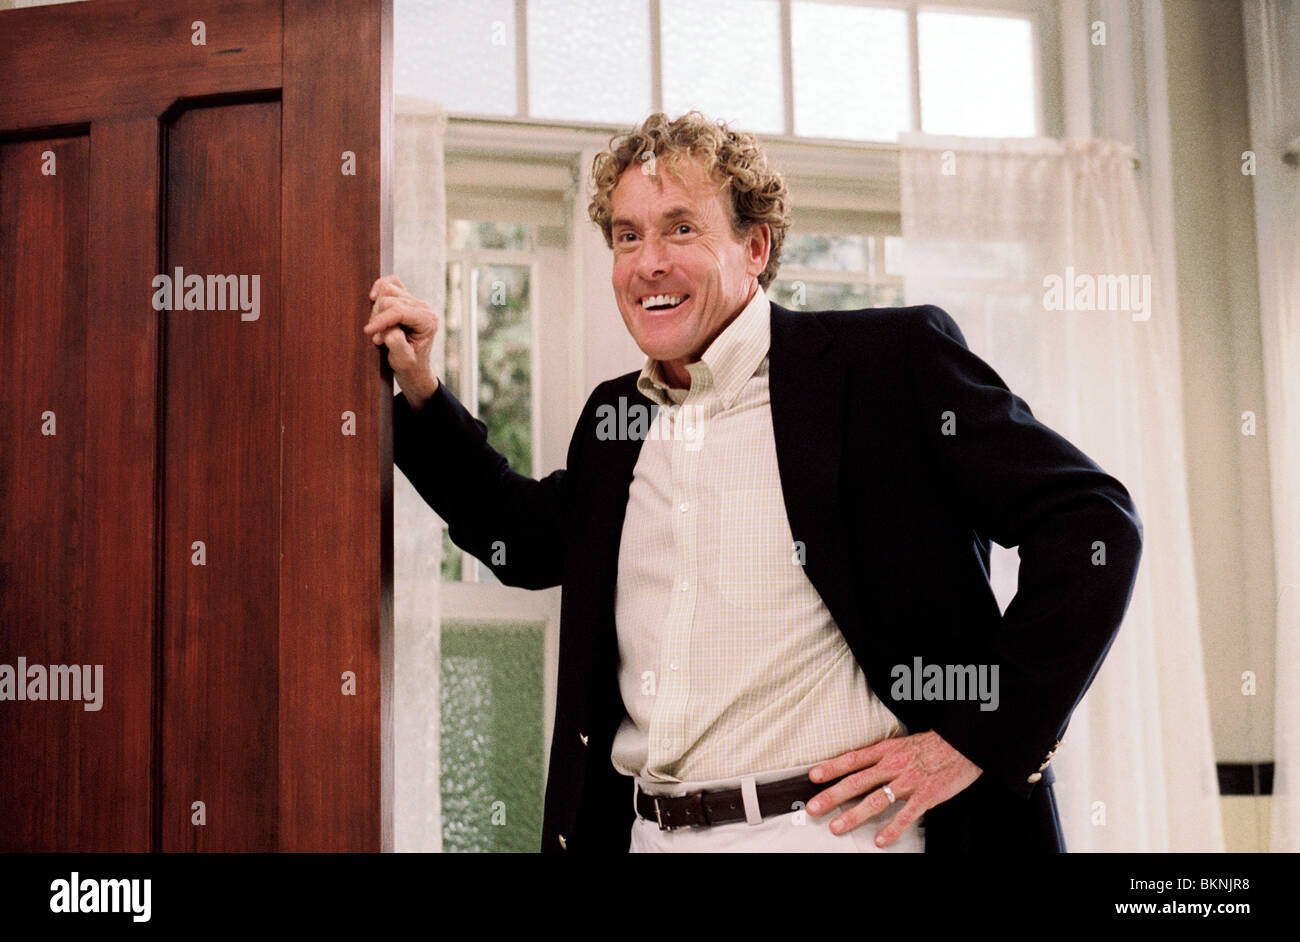 ARE WE DONE YET? (2007) JOHN C MCGINLEY DONE 001-06 - Stock Image